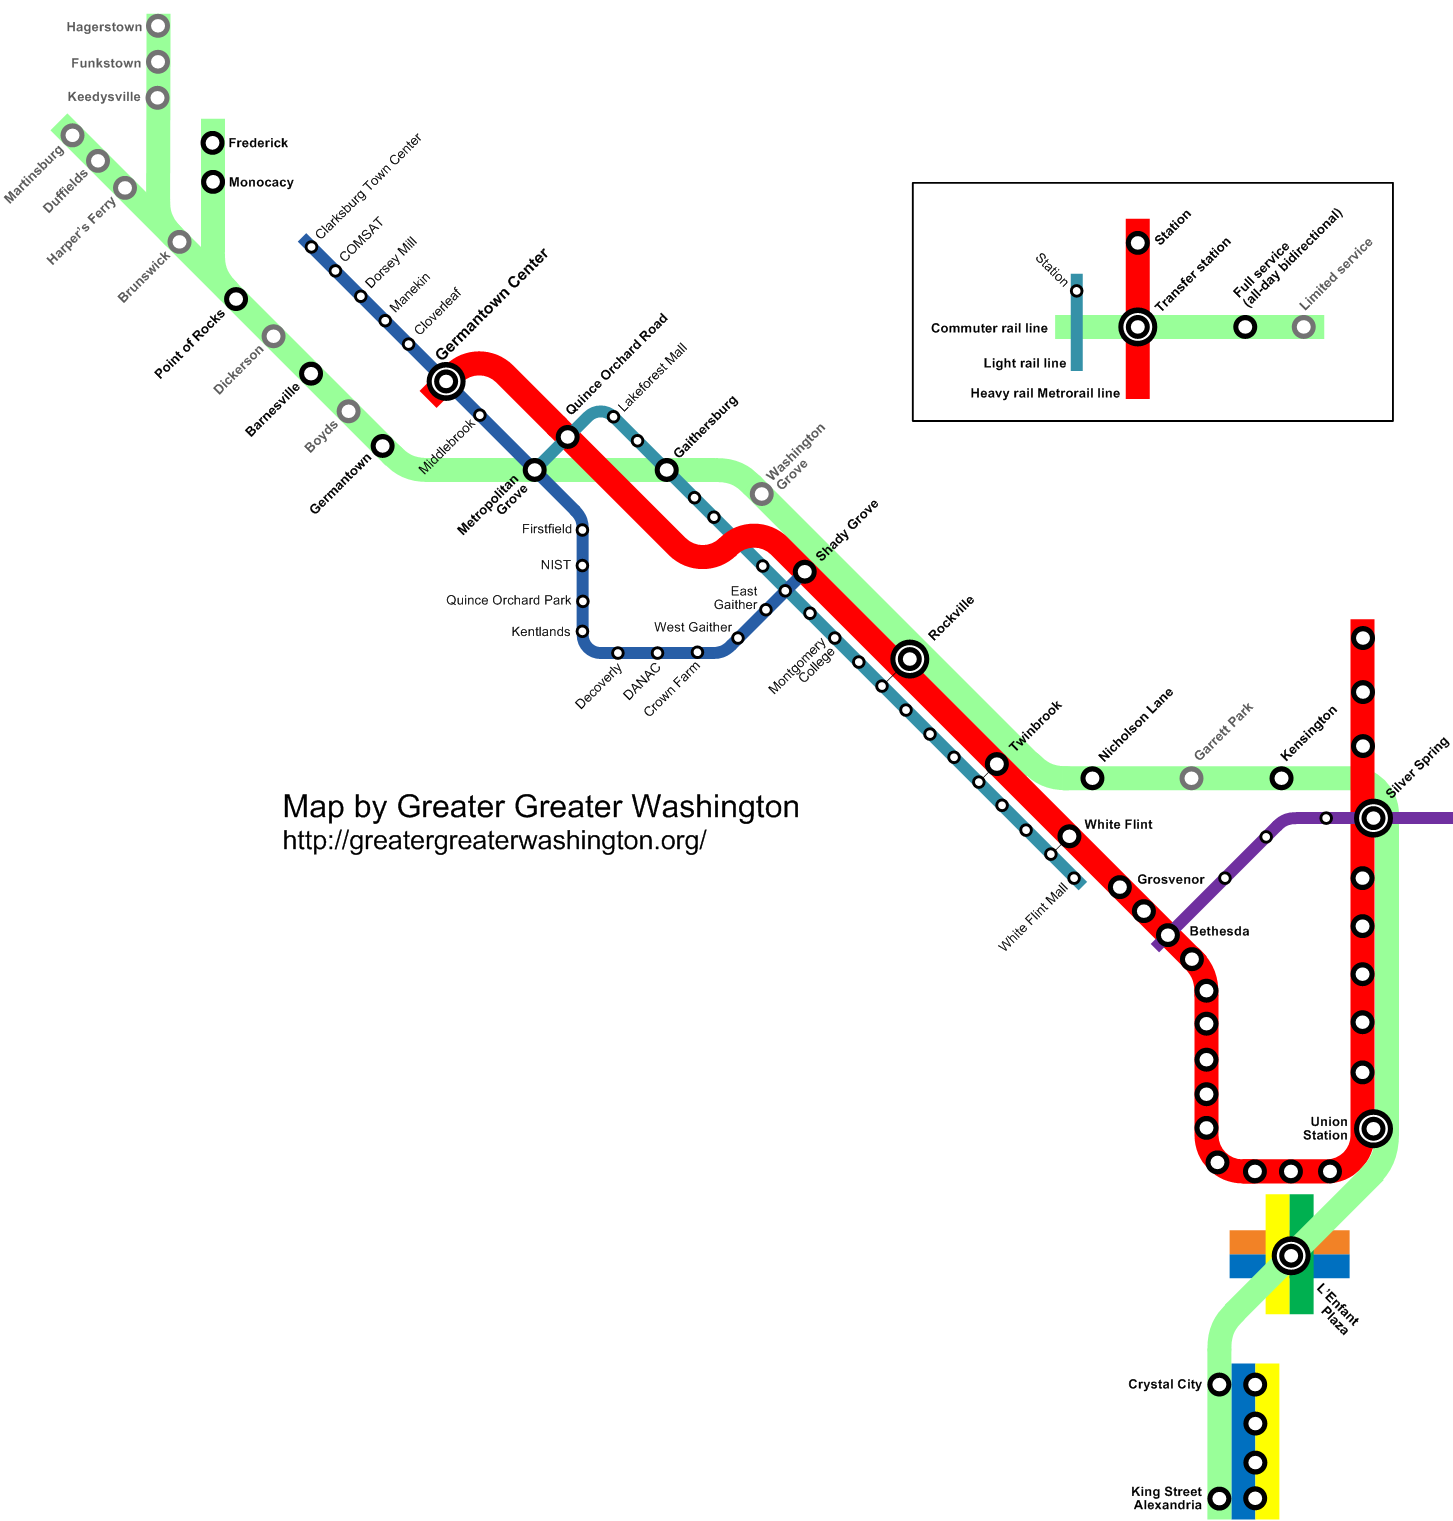 transit vision map for I-270 corridor